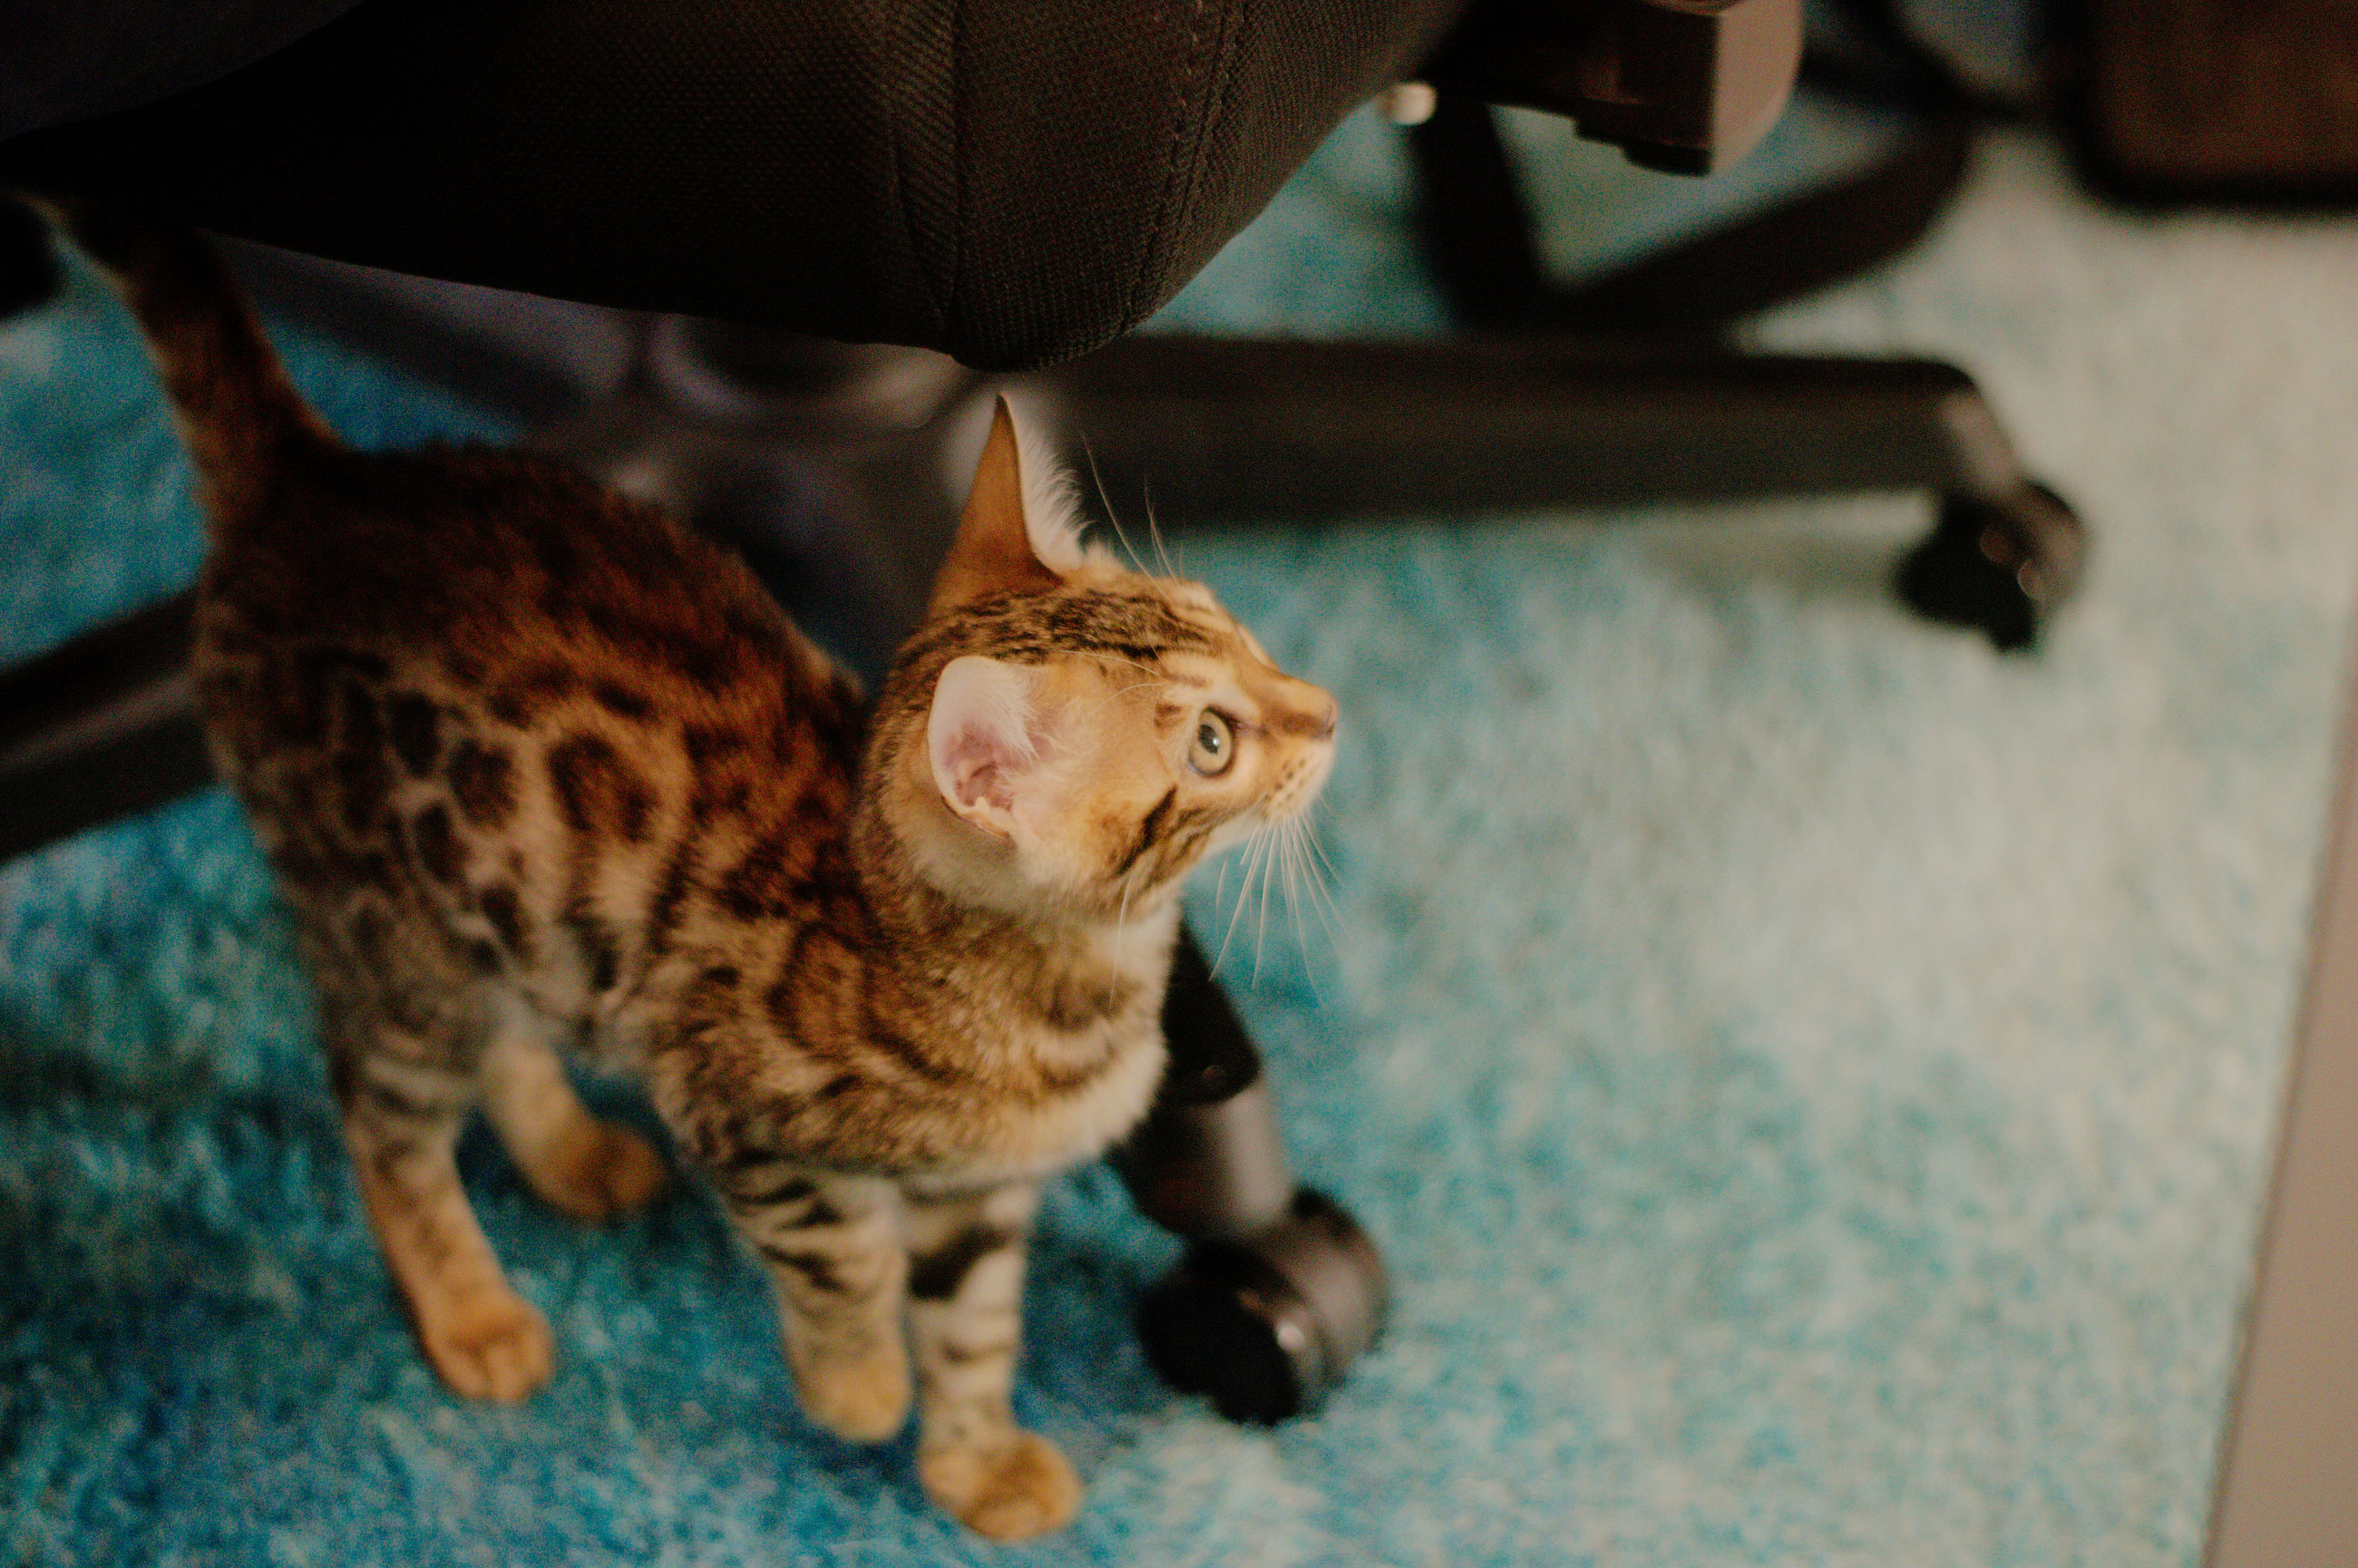 cat, pet, animal themes, animal, mammal, domestic animals, domestic cat, feline, one animal, felidae, small to medium-sized cats, kitten, indoors, no people, whiskers, focus on foreground, carnivore, full length